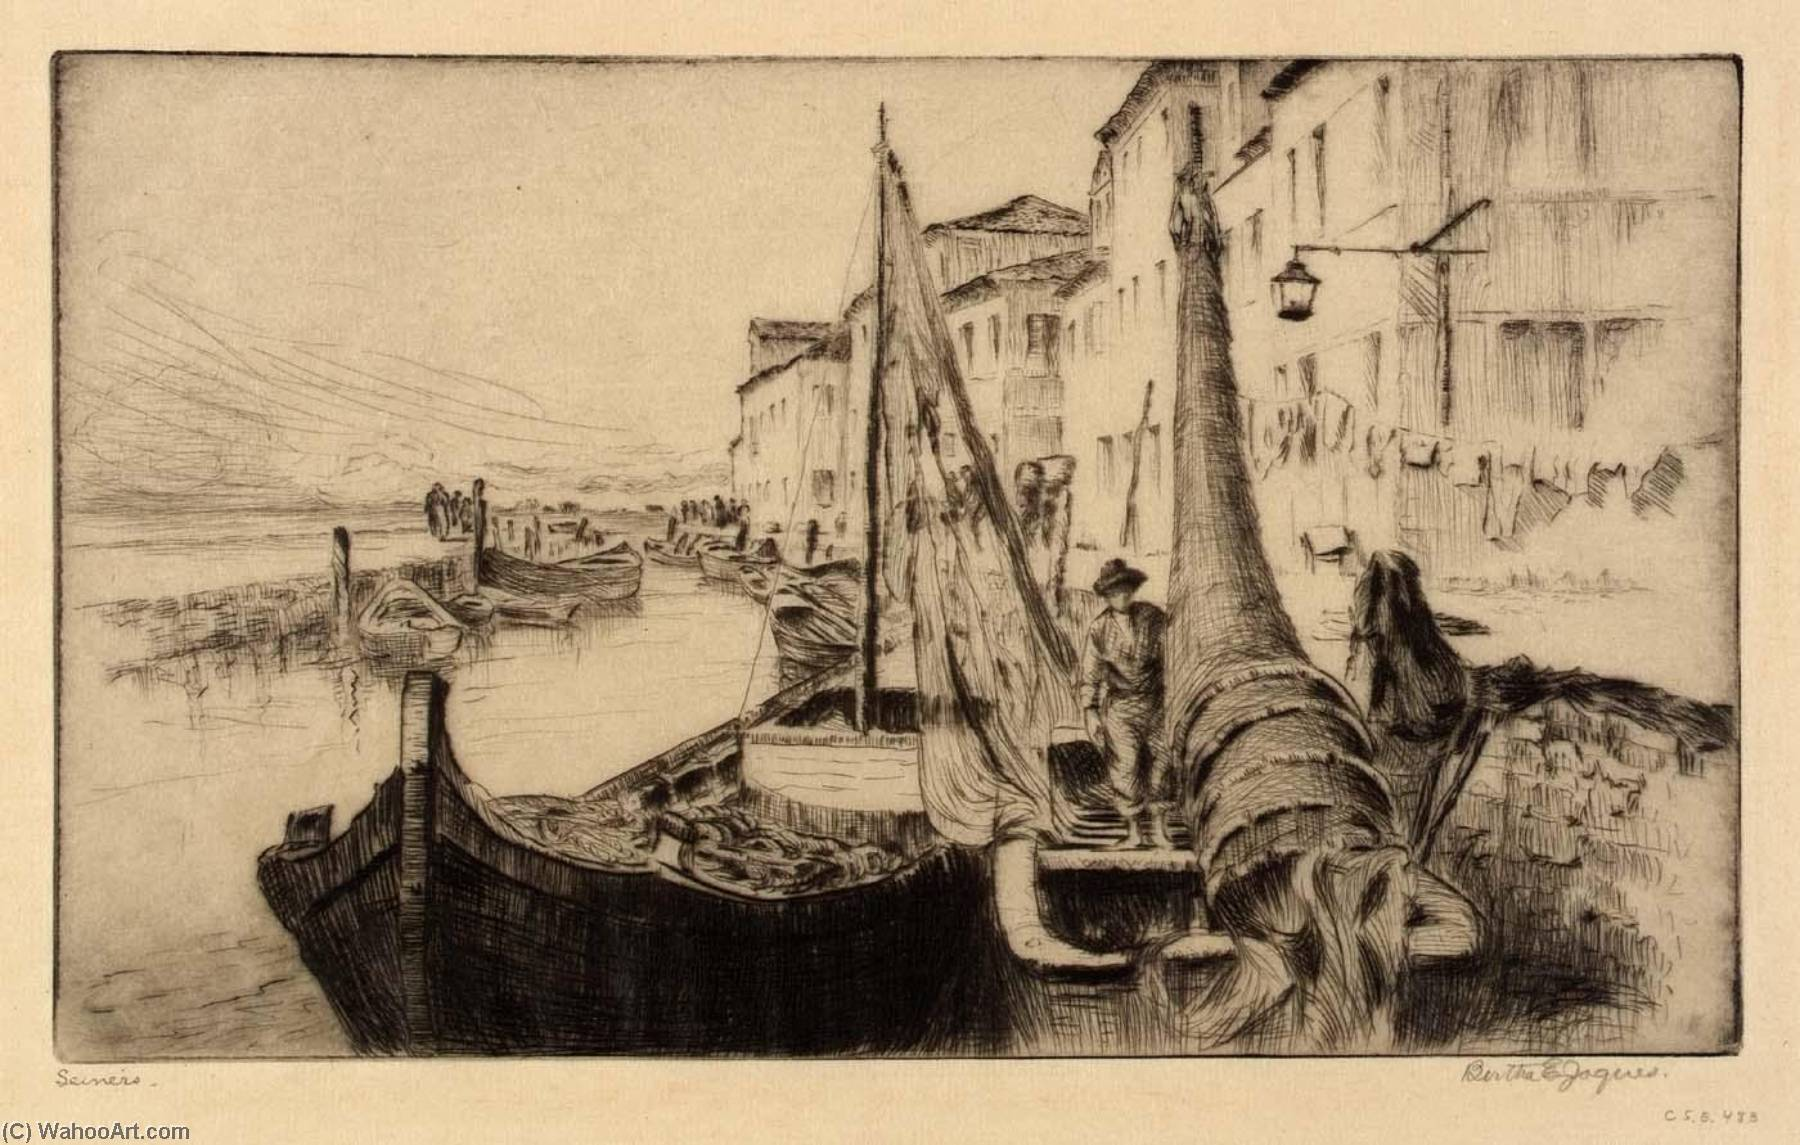 Seiners, Chioggia by Bertha Evelyn Jaques | Museum Quality Copies Bertha Evelyn Jaques | WahooArt.com